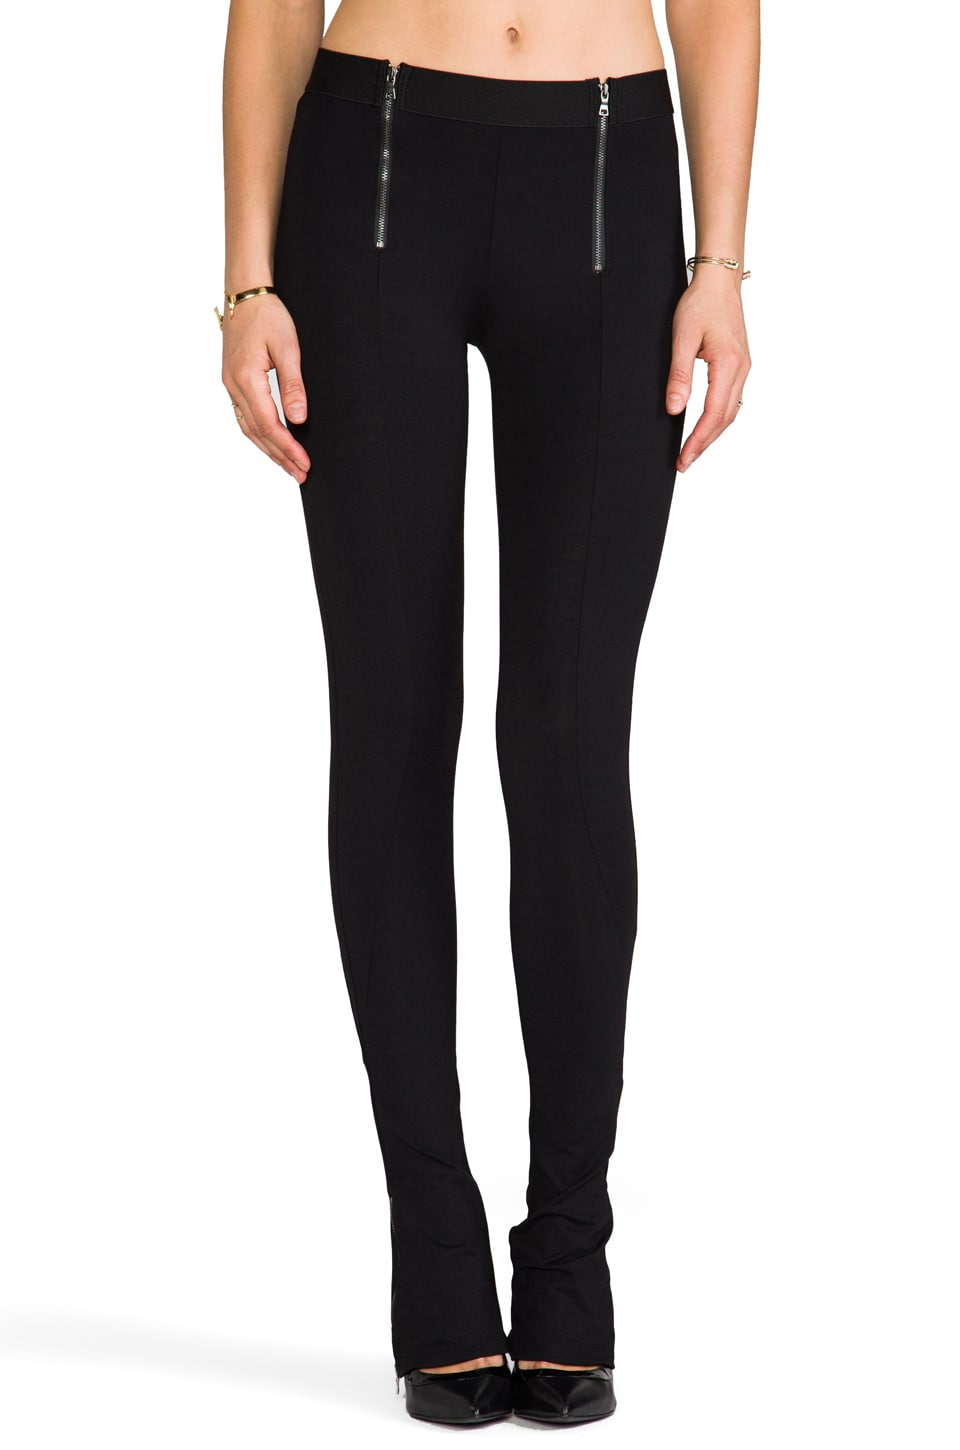 David Lerner The Carlyle Legging in Black